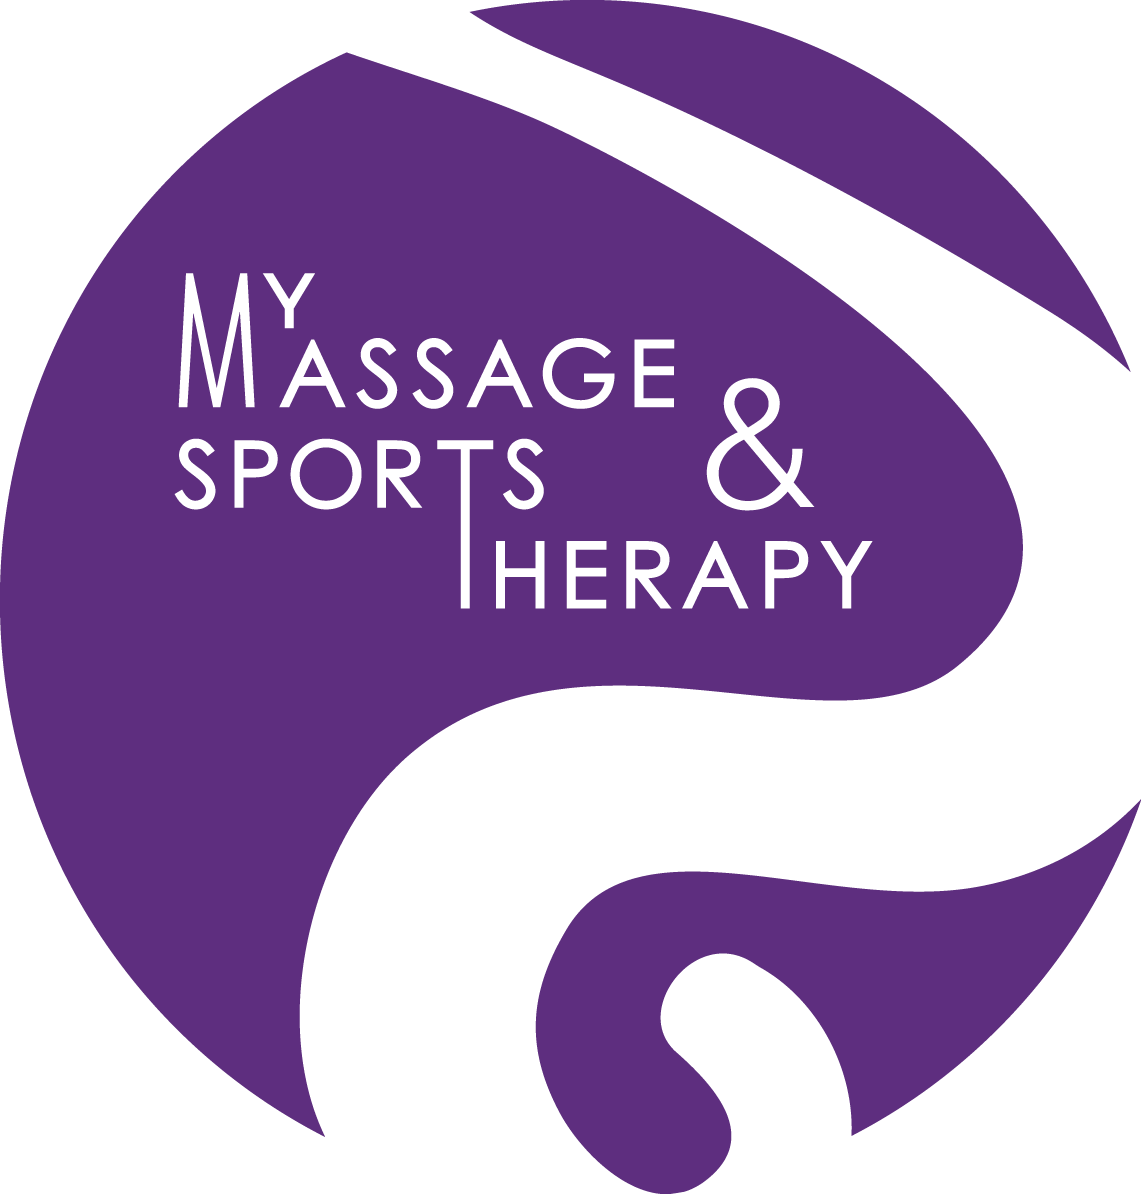 My Massage & Sports Therapy